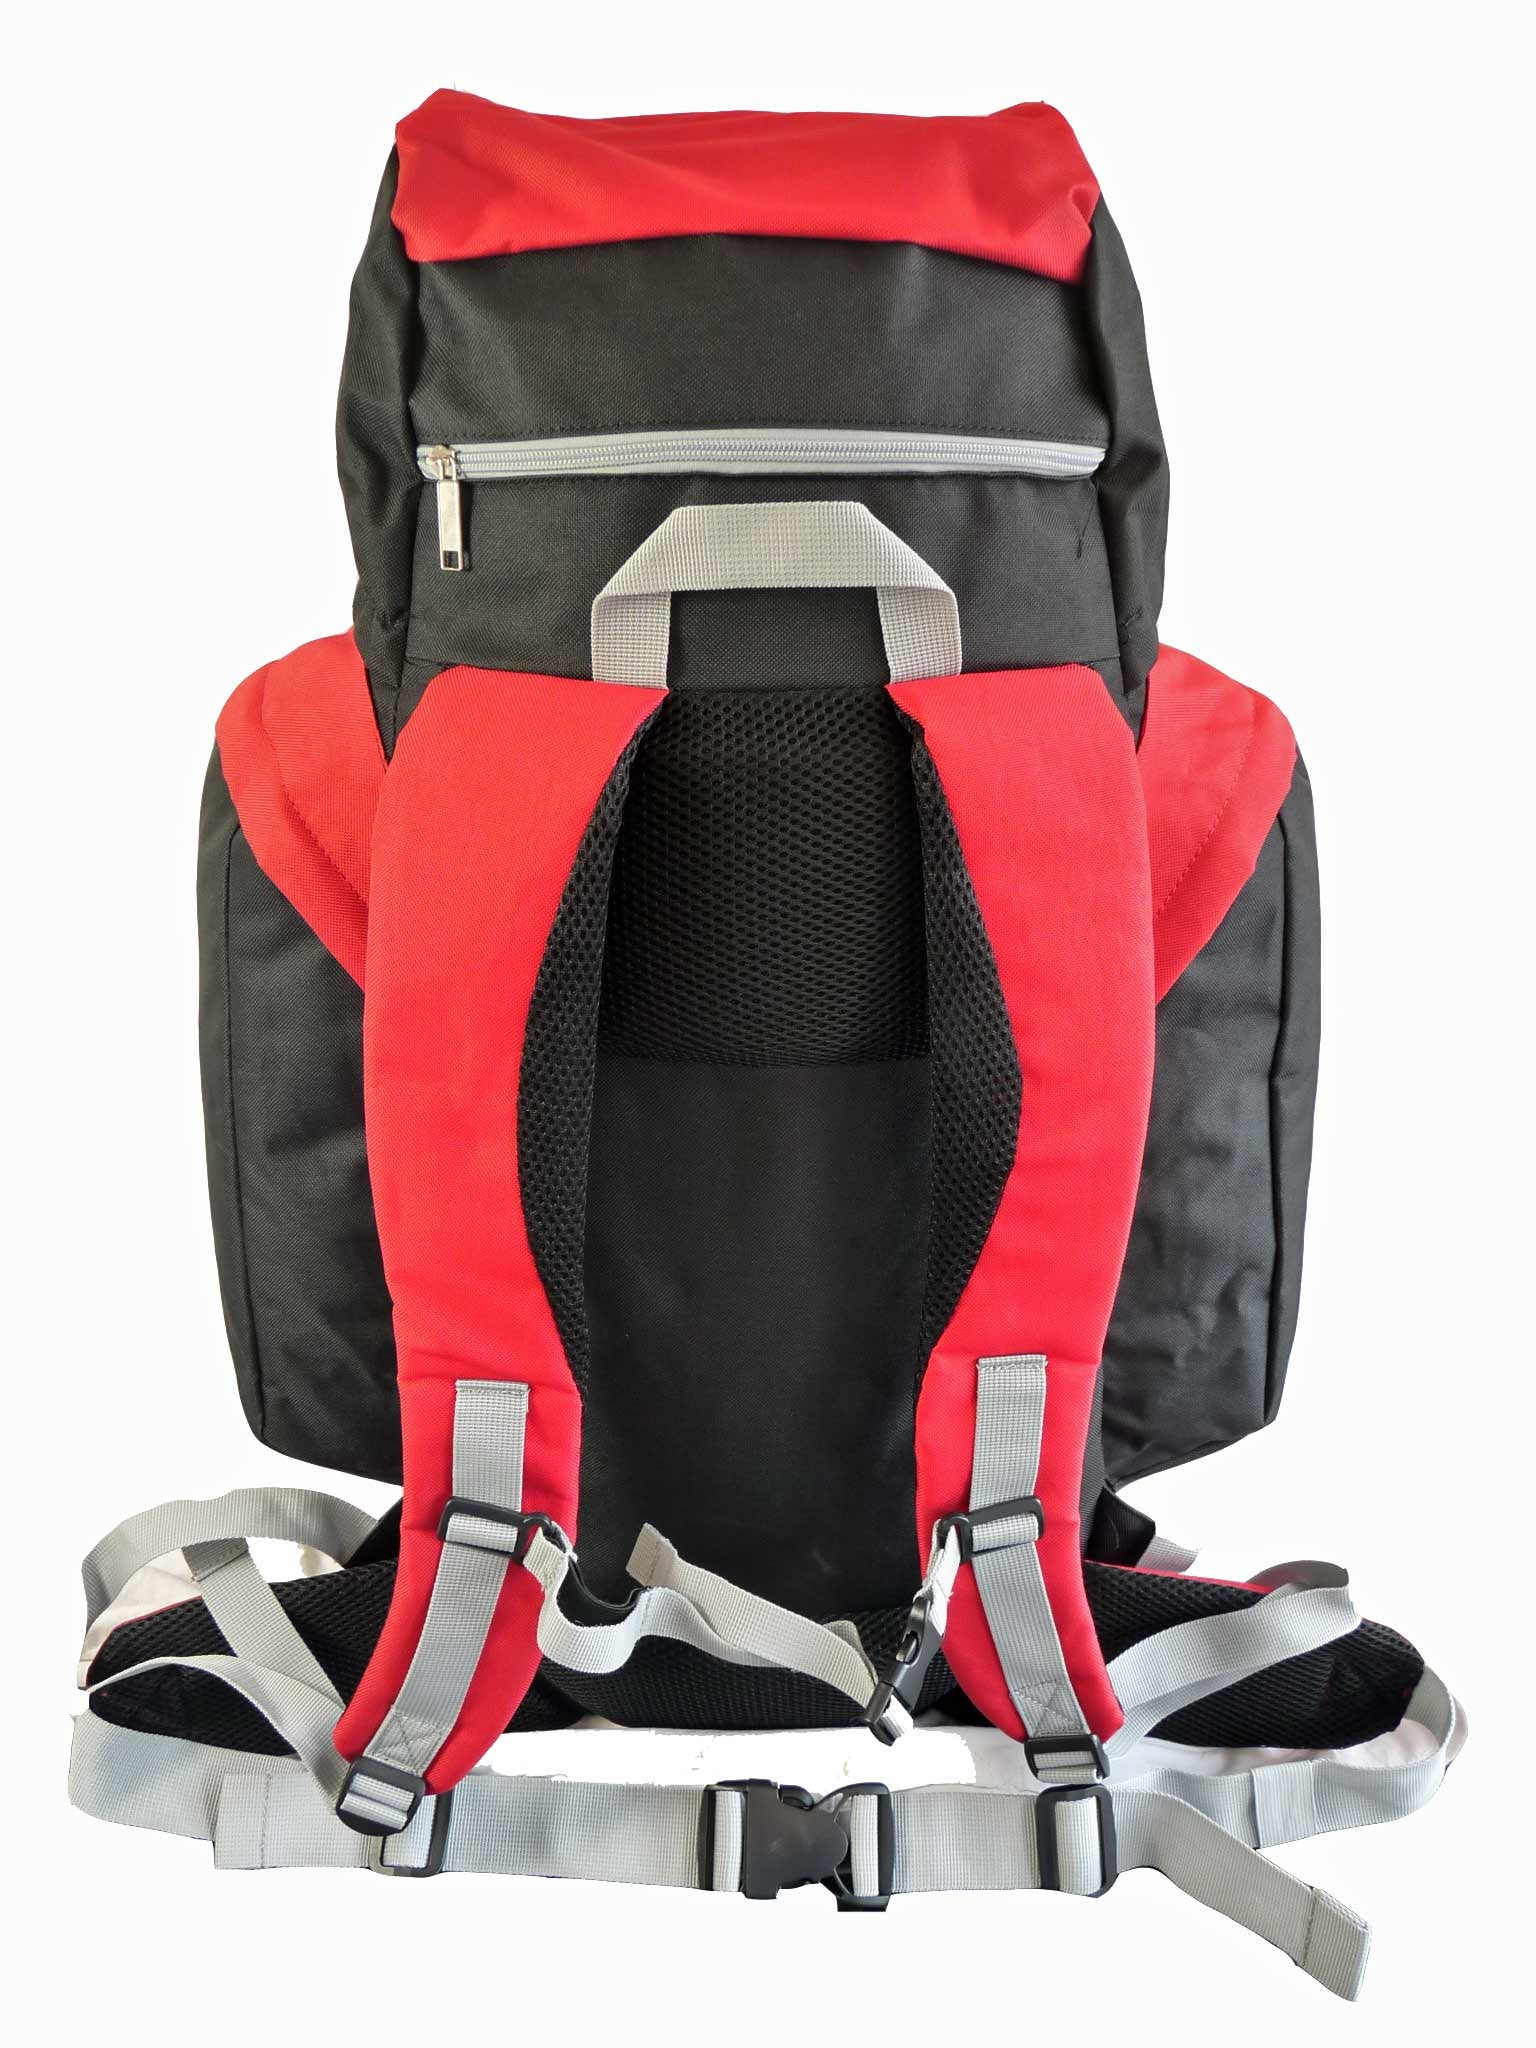 80 100 125 litre backpack red rear view